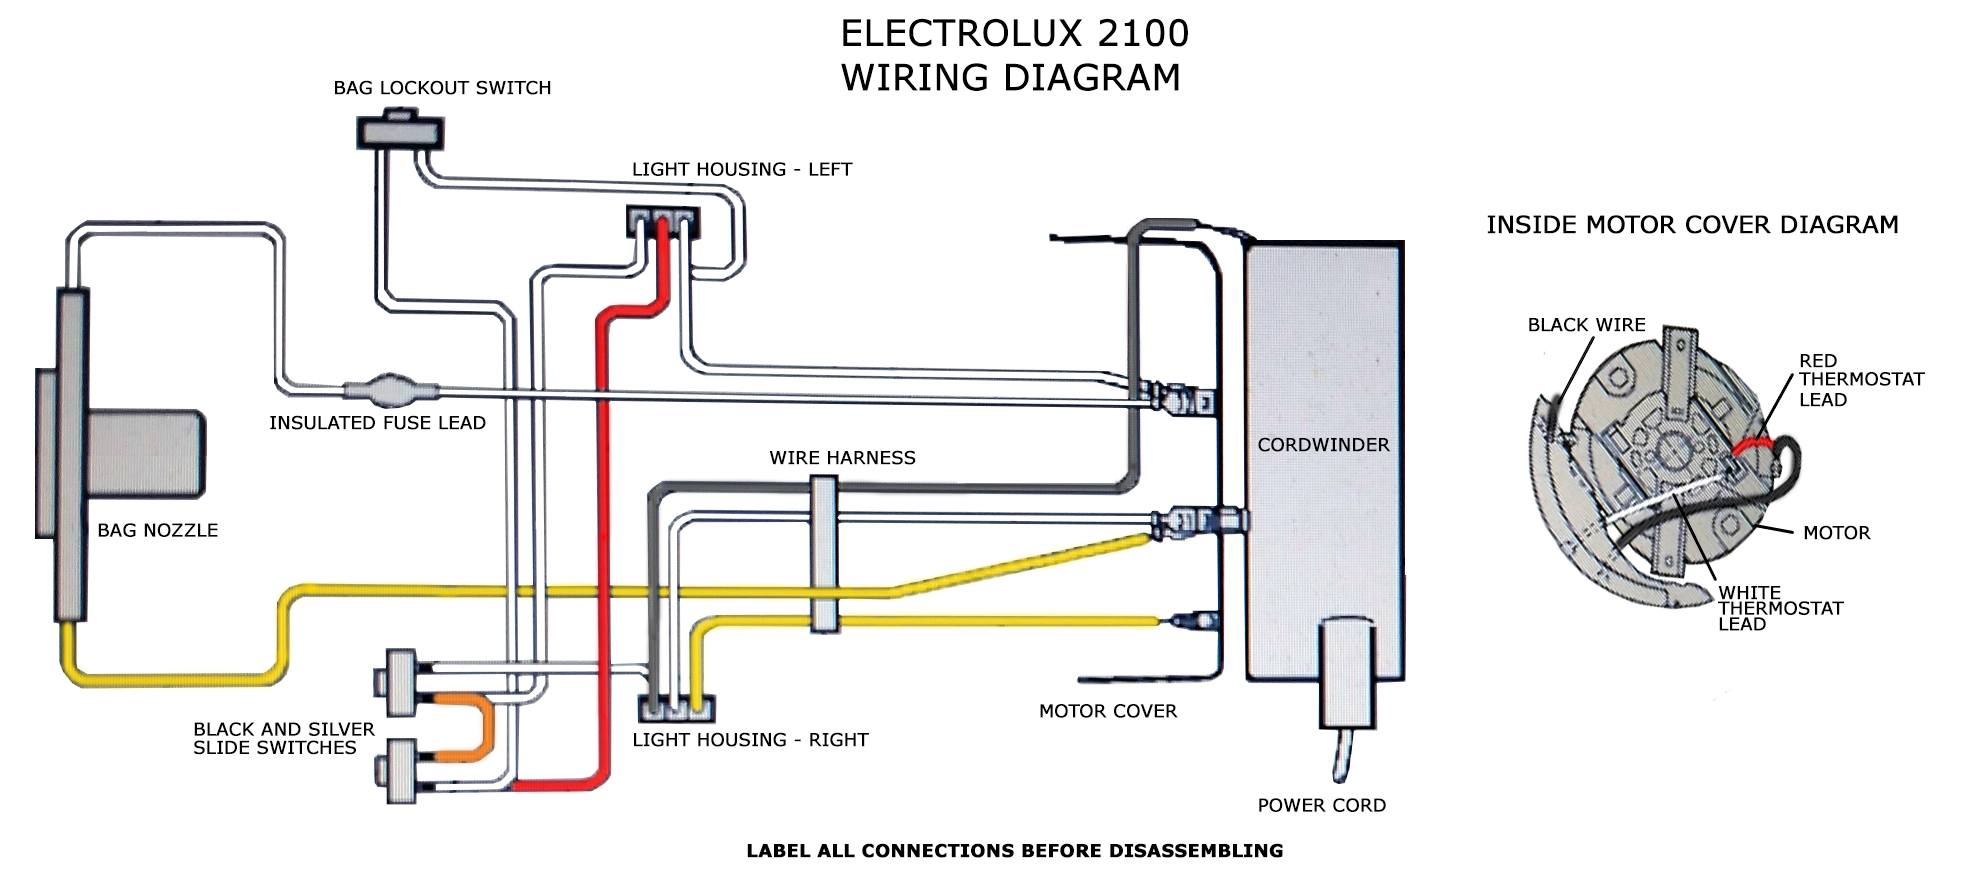 2100 wiring diagram kirby shampooer diagram bosch carpet shampooers \u2022 wiring diagram  at reclaimingppi.co